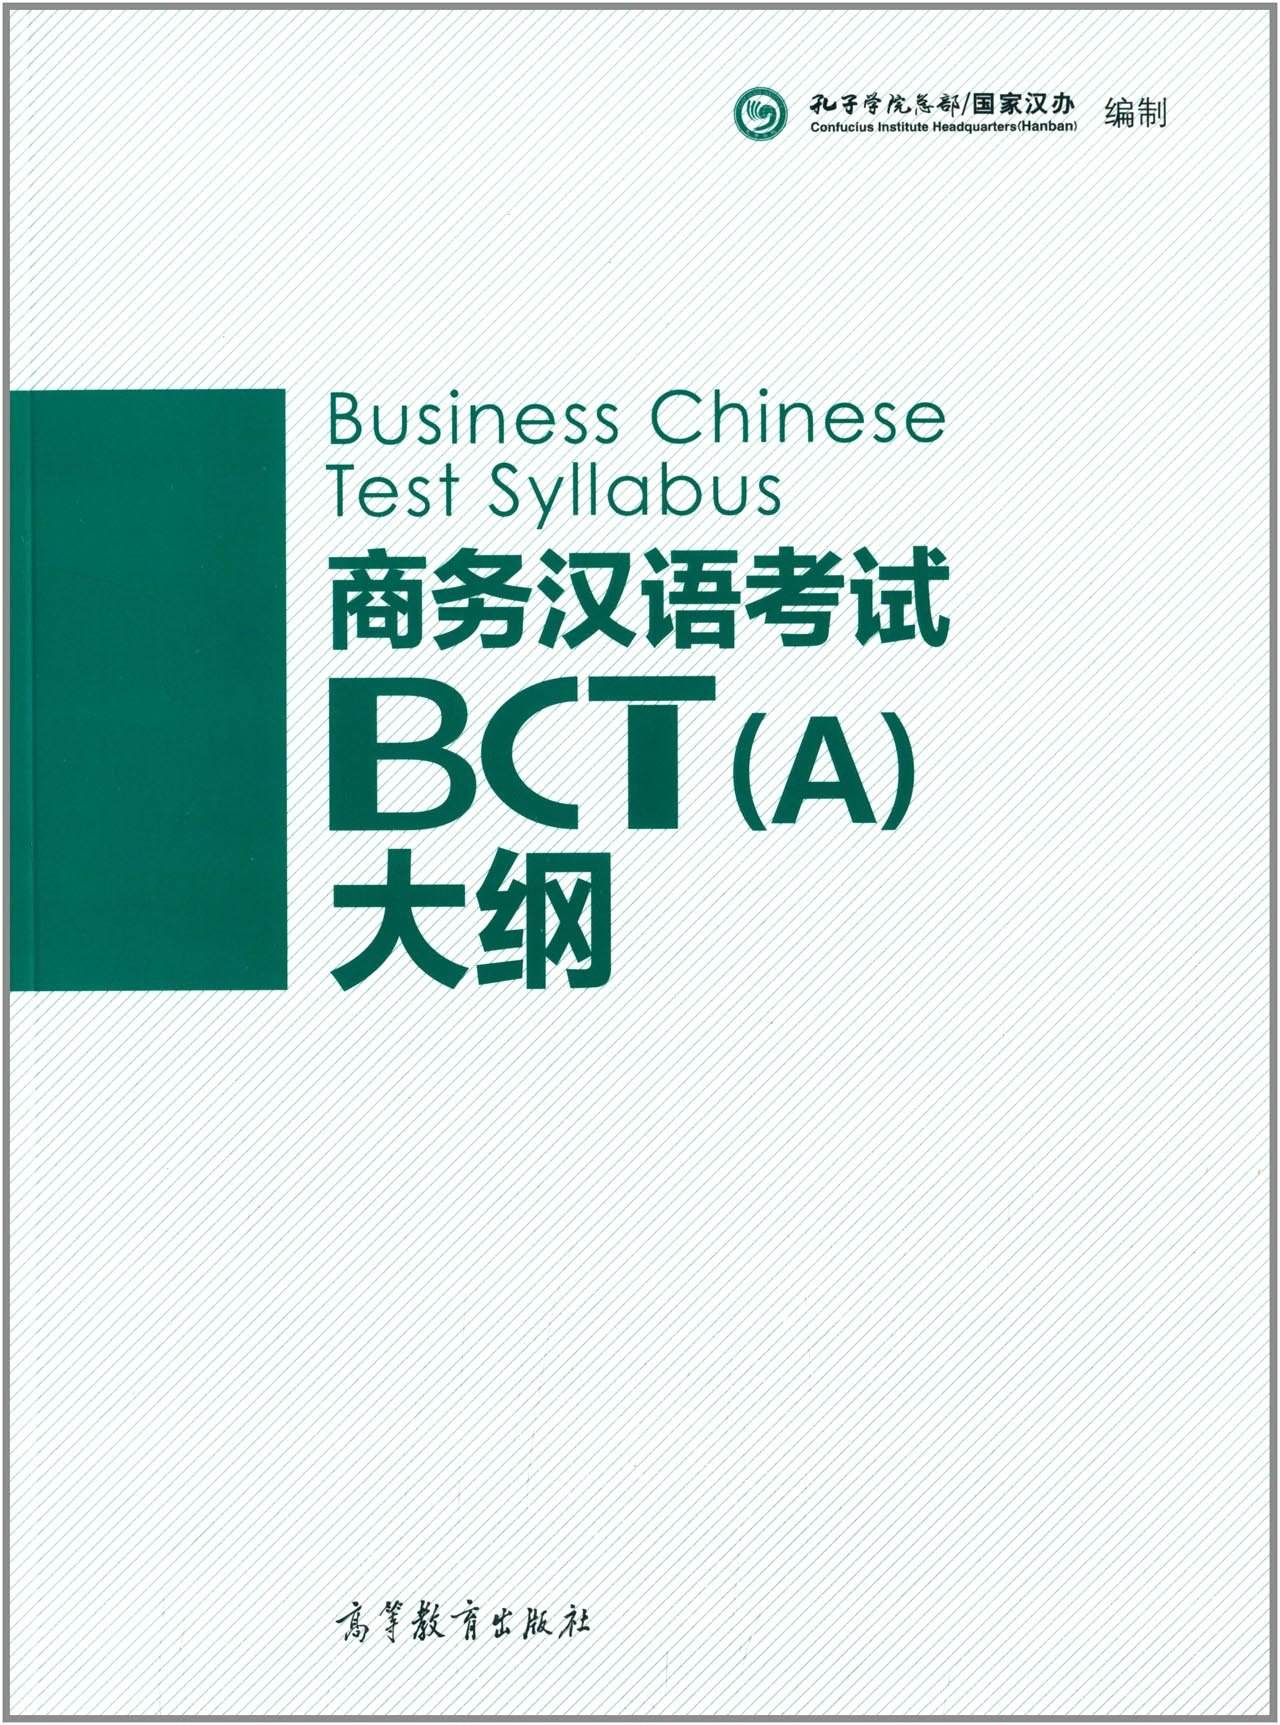 Business Chinese Test (A) - Syllabus